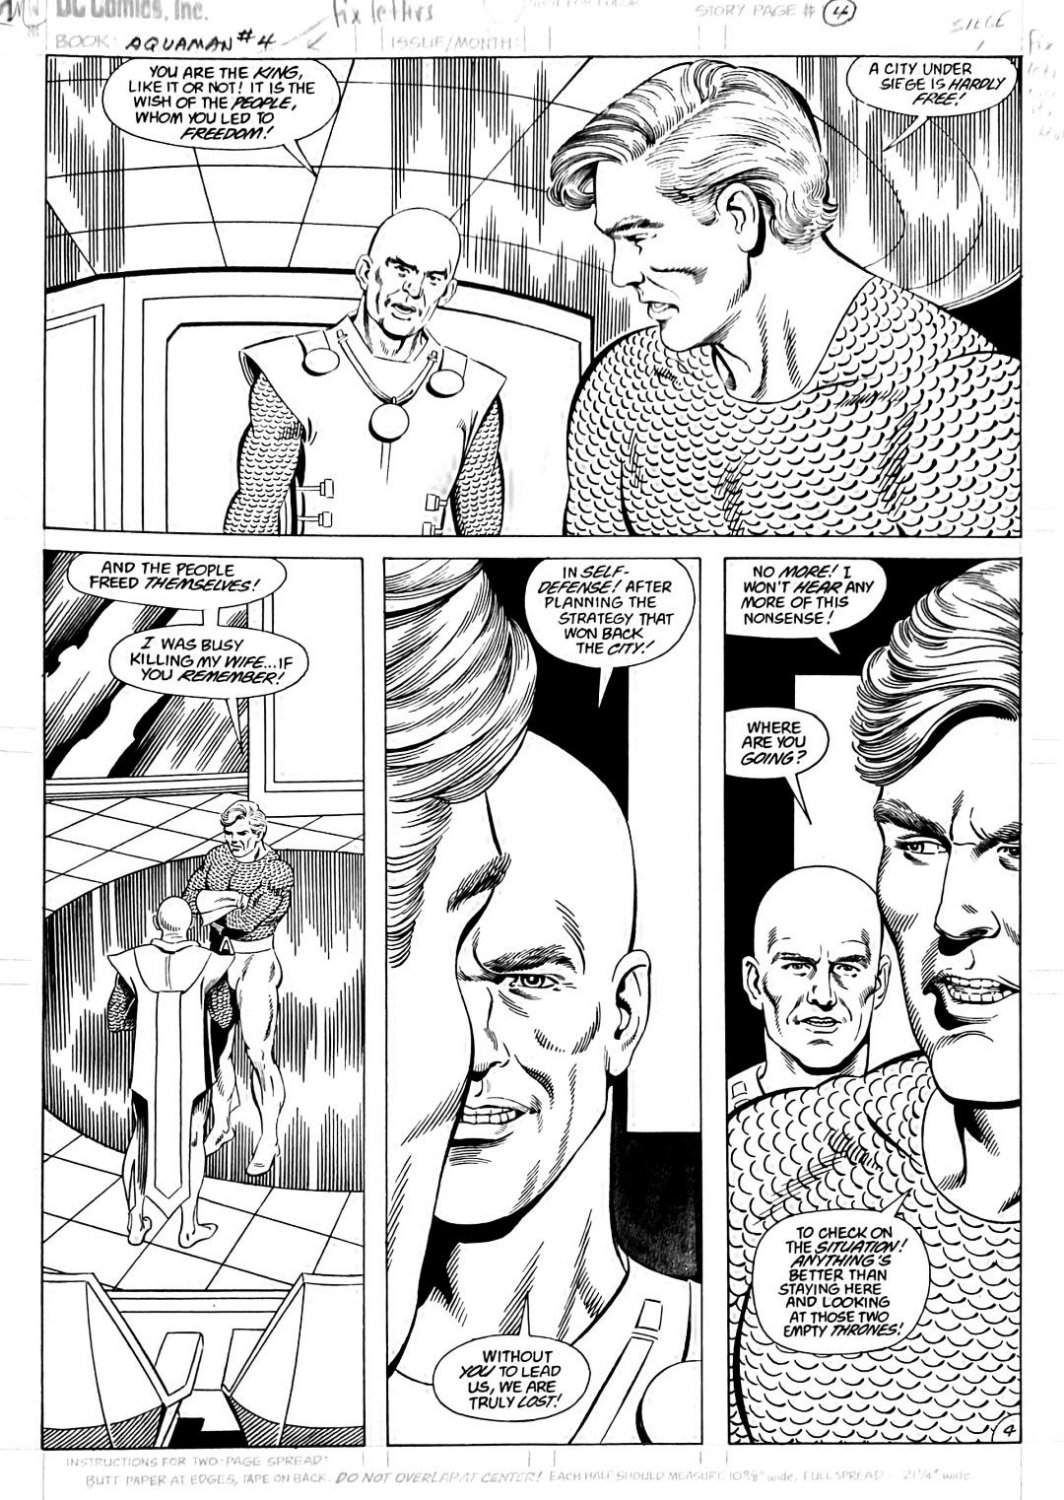 Aquaman #4 p.4(SOLD LIVE ON 'DUELING DEALERS OF COMIC ART' EPISODE #28 PODCAST ON 8-2-2021 (RE-WATCH THIS FUNNY ART SELLING SHOW HERE)